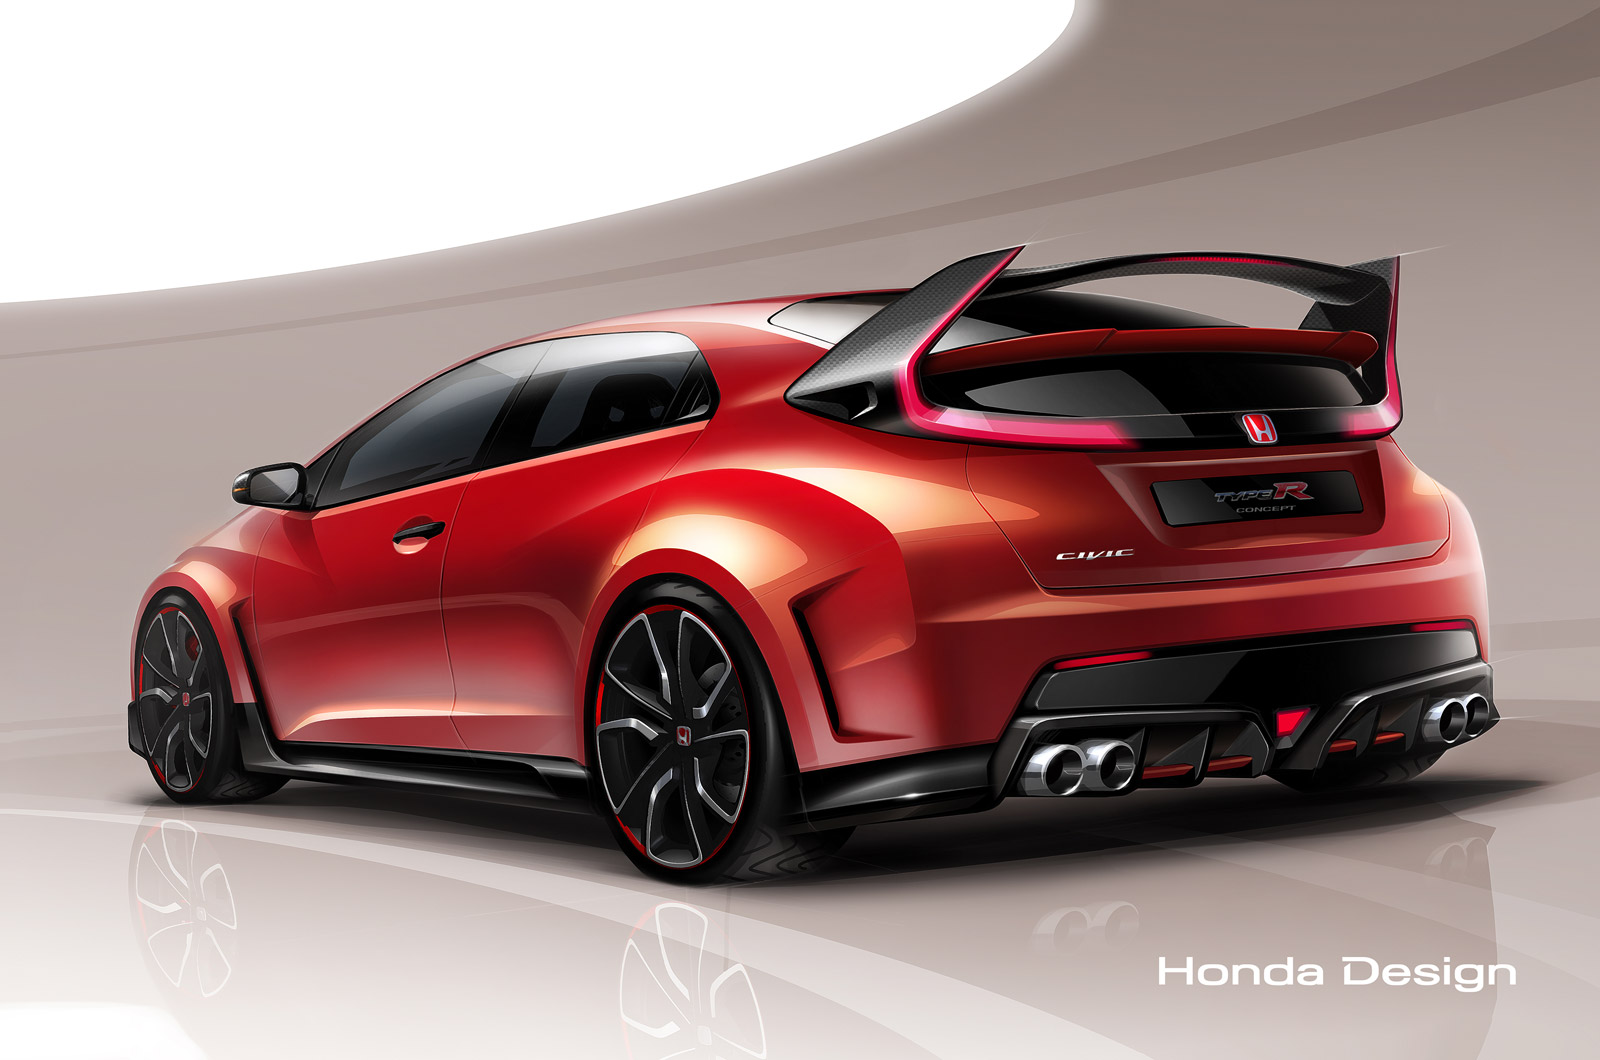 2015 Honda Civic Ad Is The Best Weve Seen In A Long Time